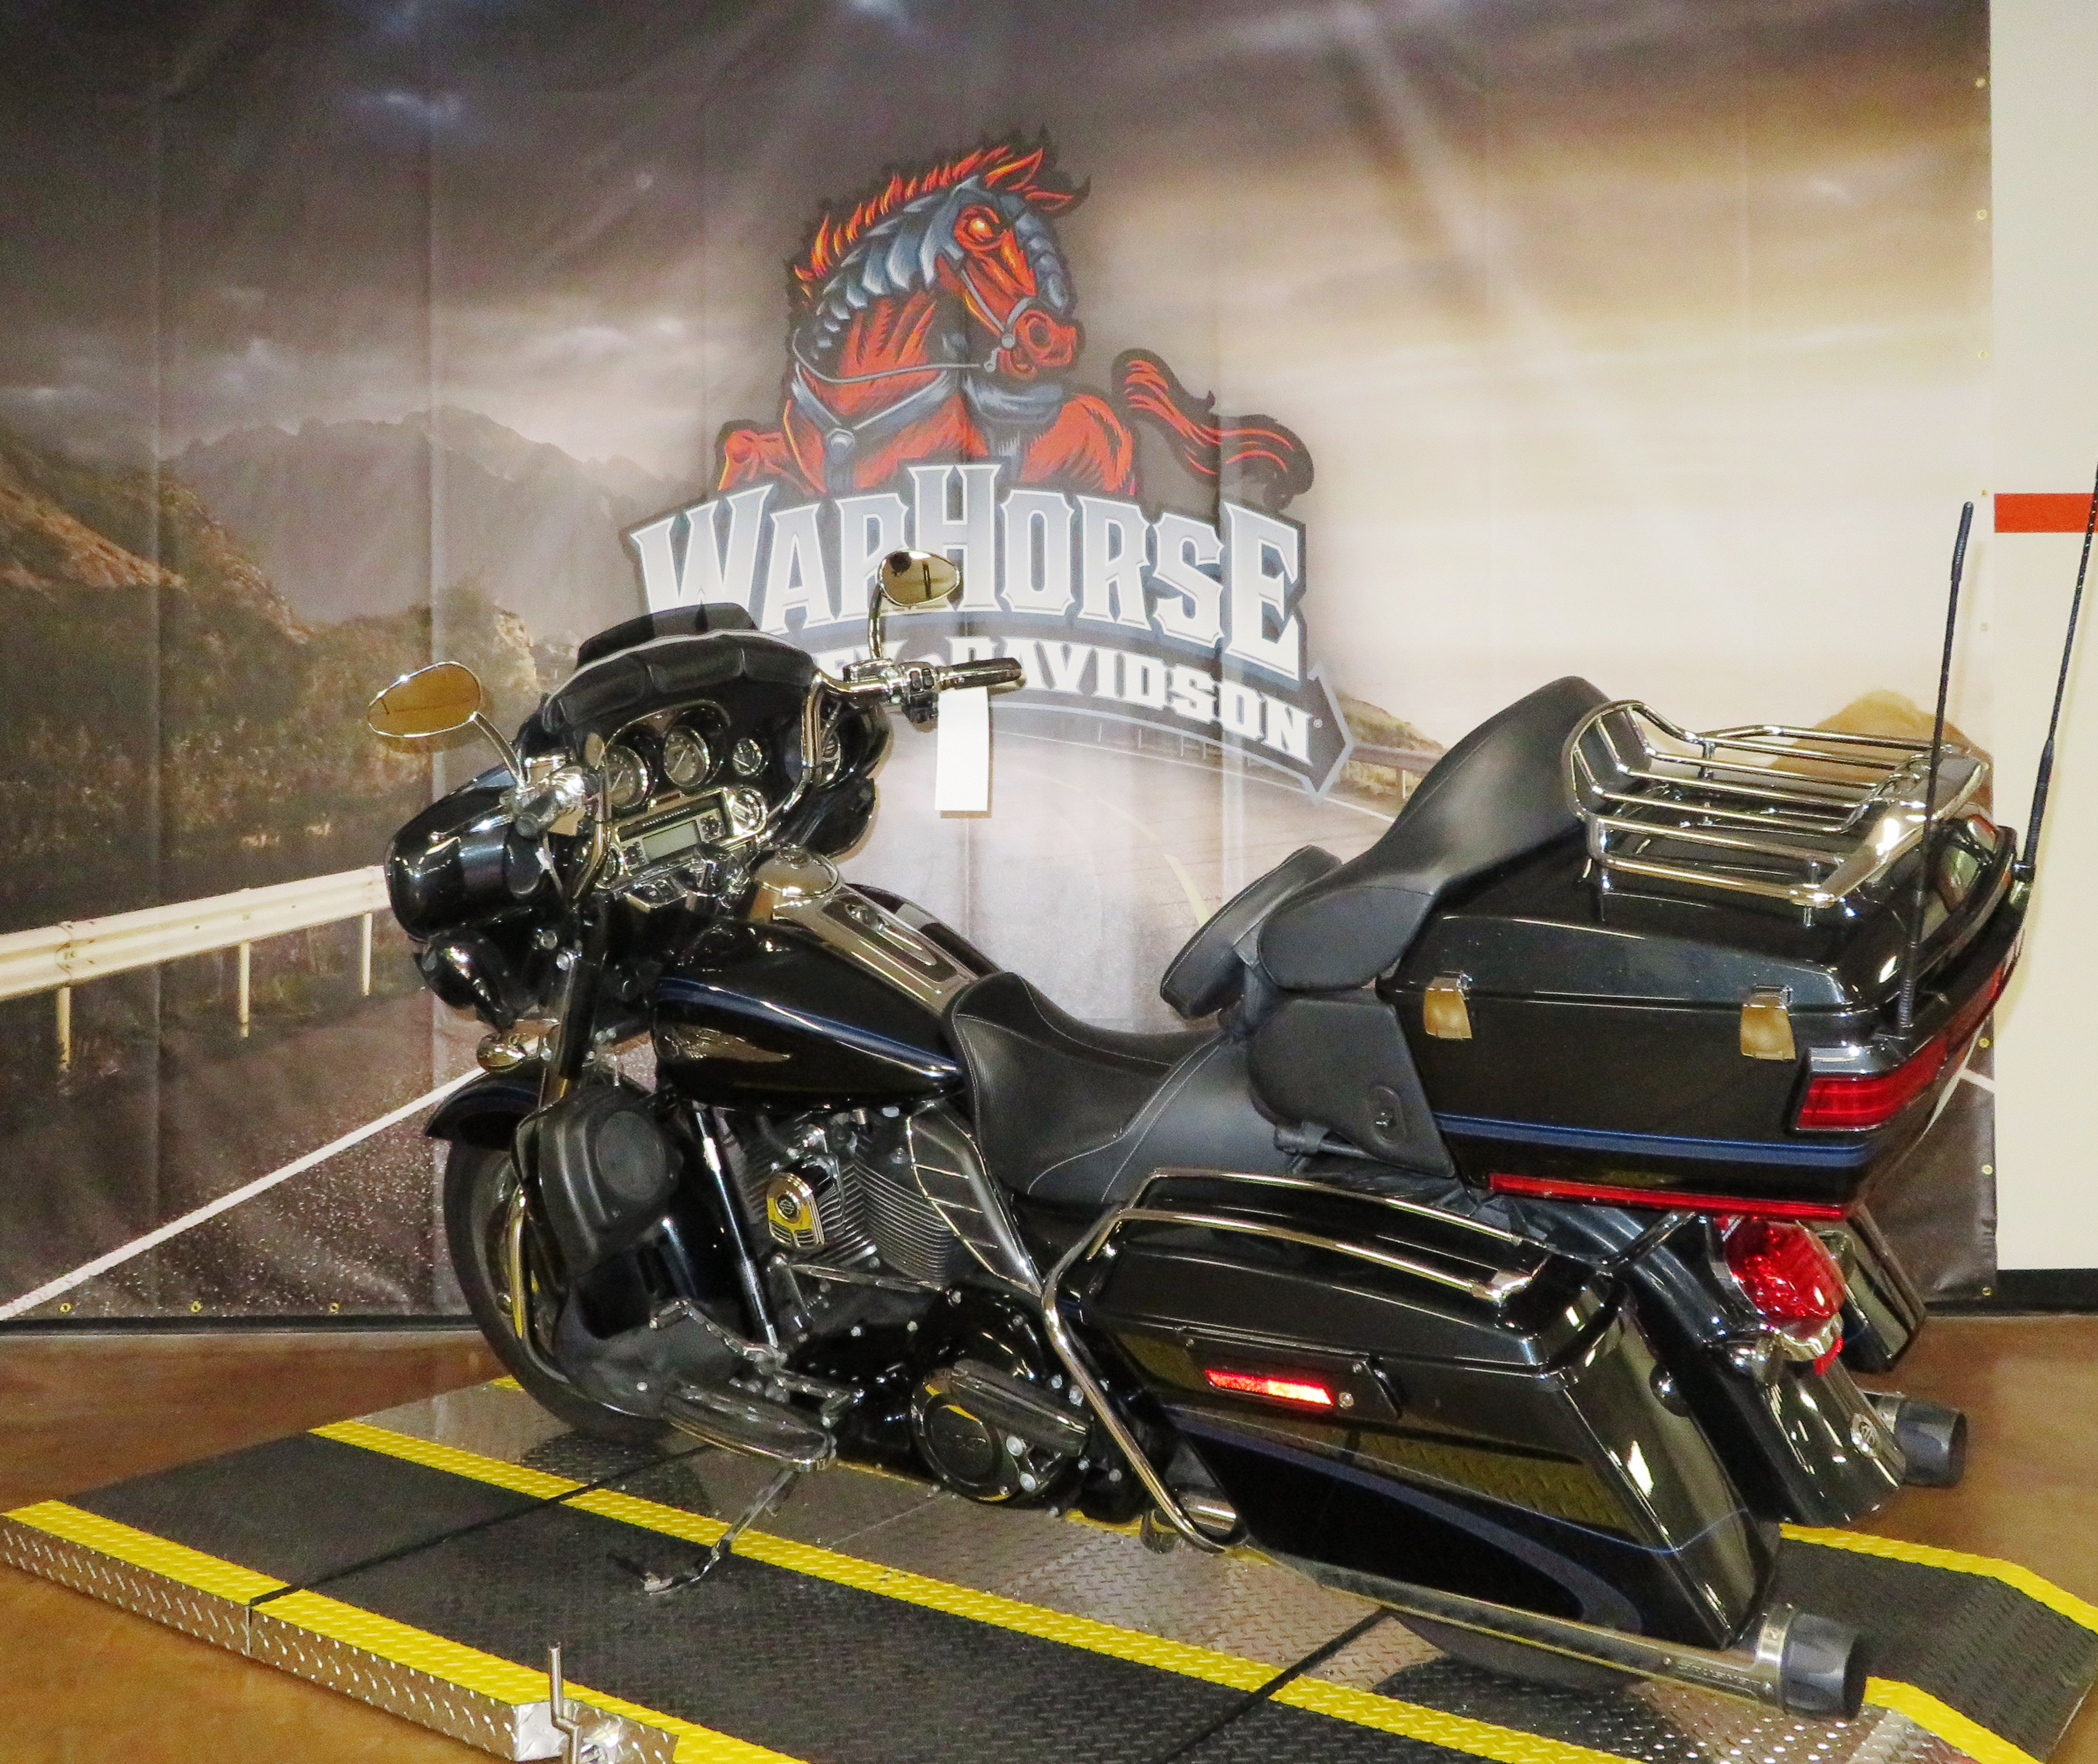 Pre-Owned 2013 Harley-Davidson CVO Ultra Classic Electra Glide 110th Anniversary